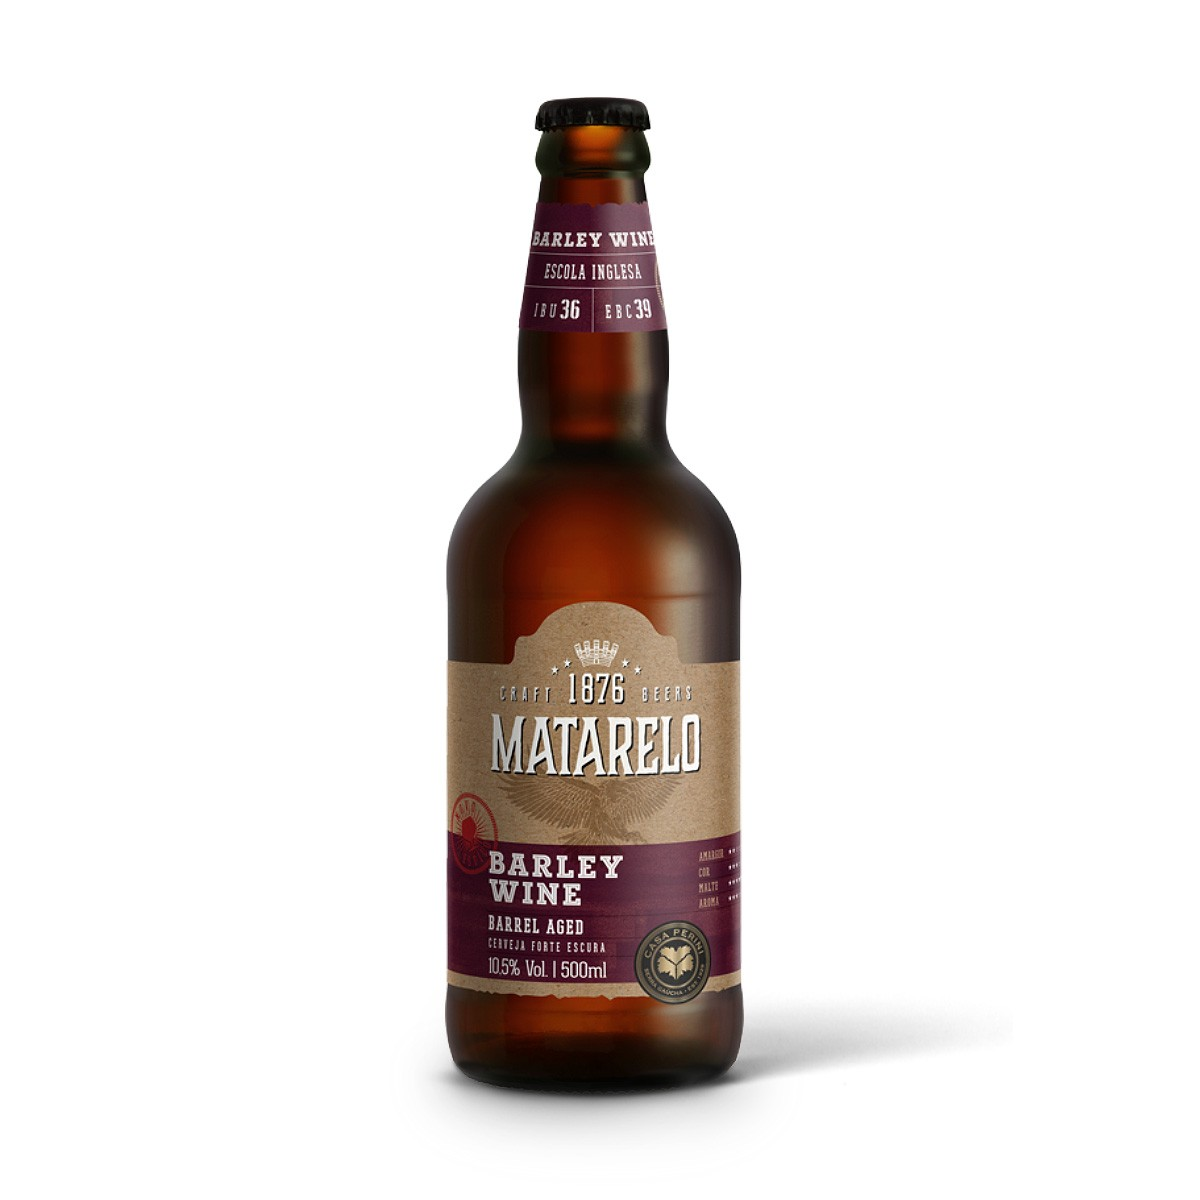 Matarelo Barley Wine 500ml